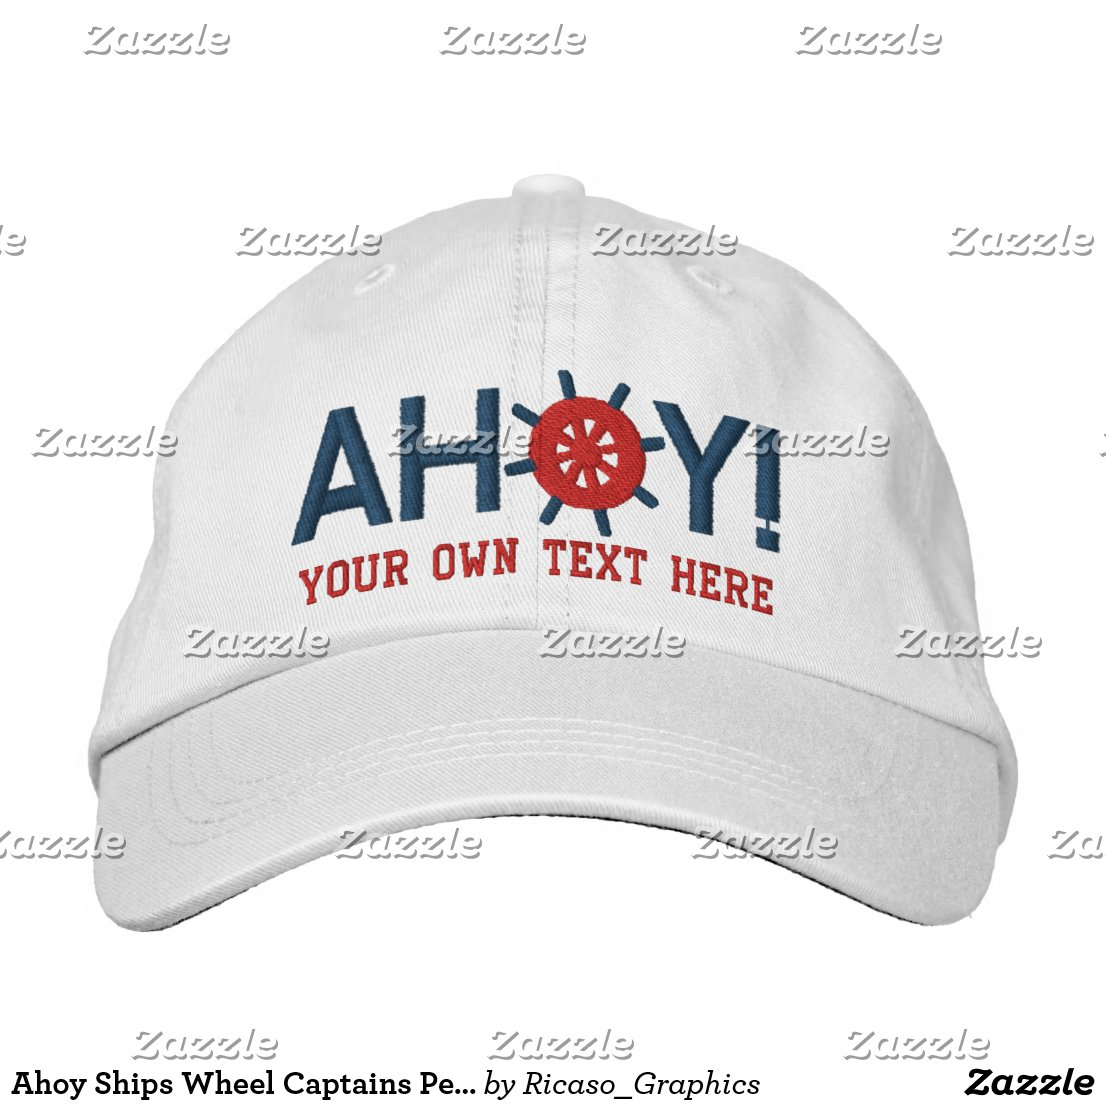 Ahoy Ships Wheel Captains Personalized